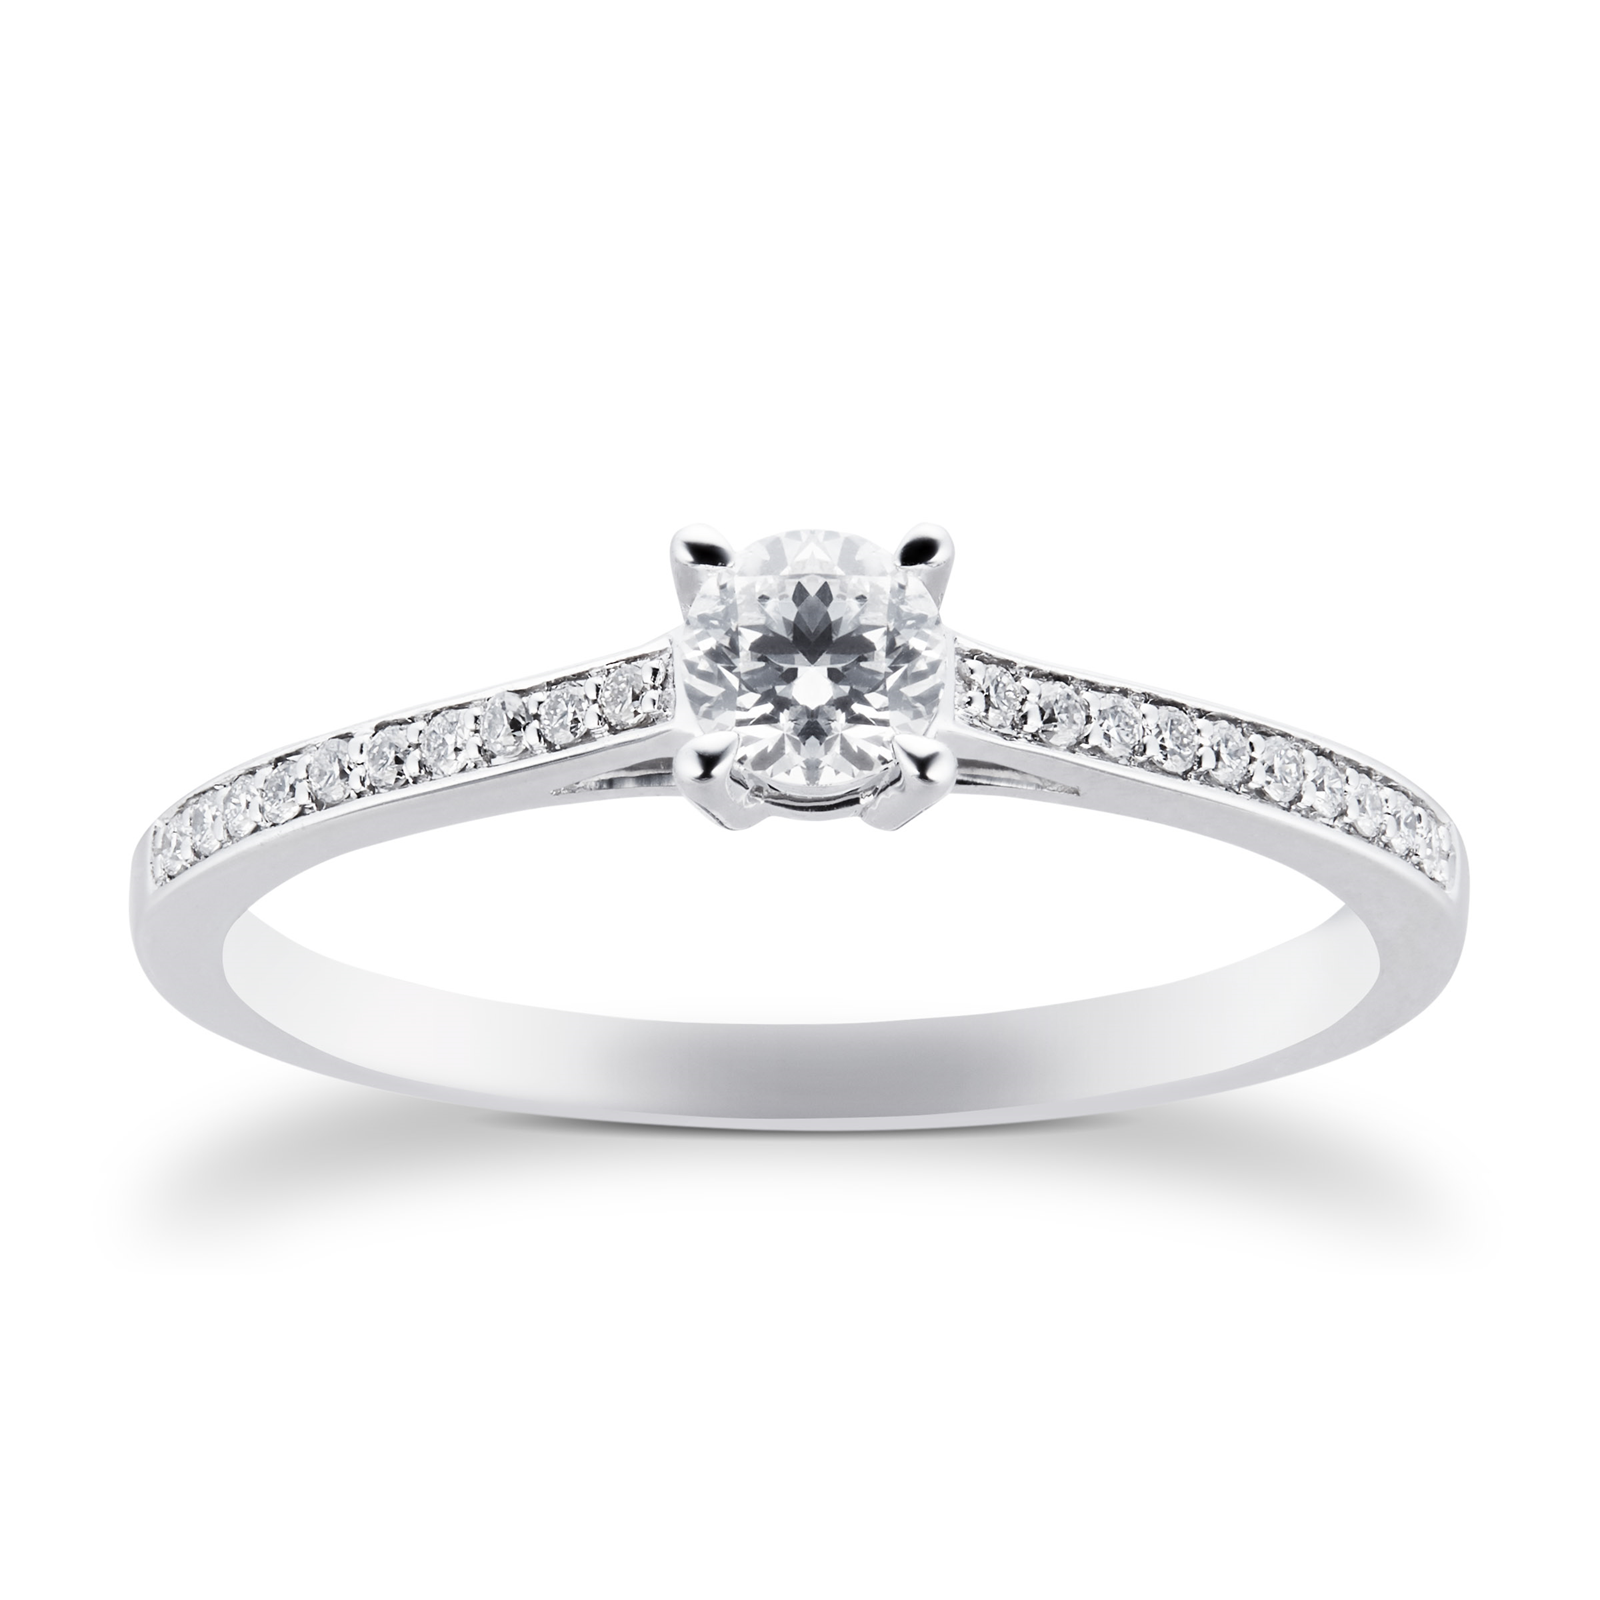 18ct White Gold Brilliant Cut 0.30 Carat 88 Facet Diamond Ring